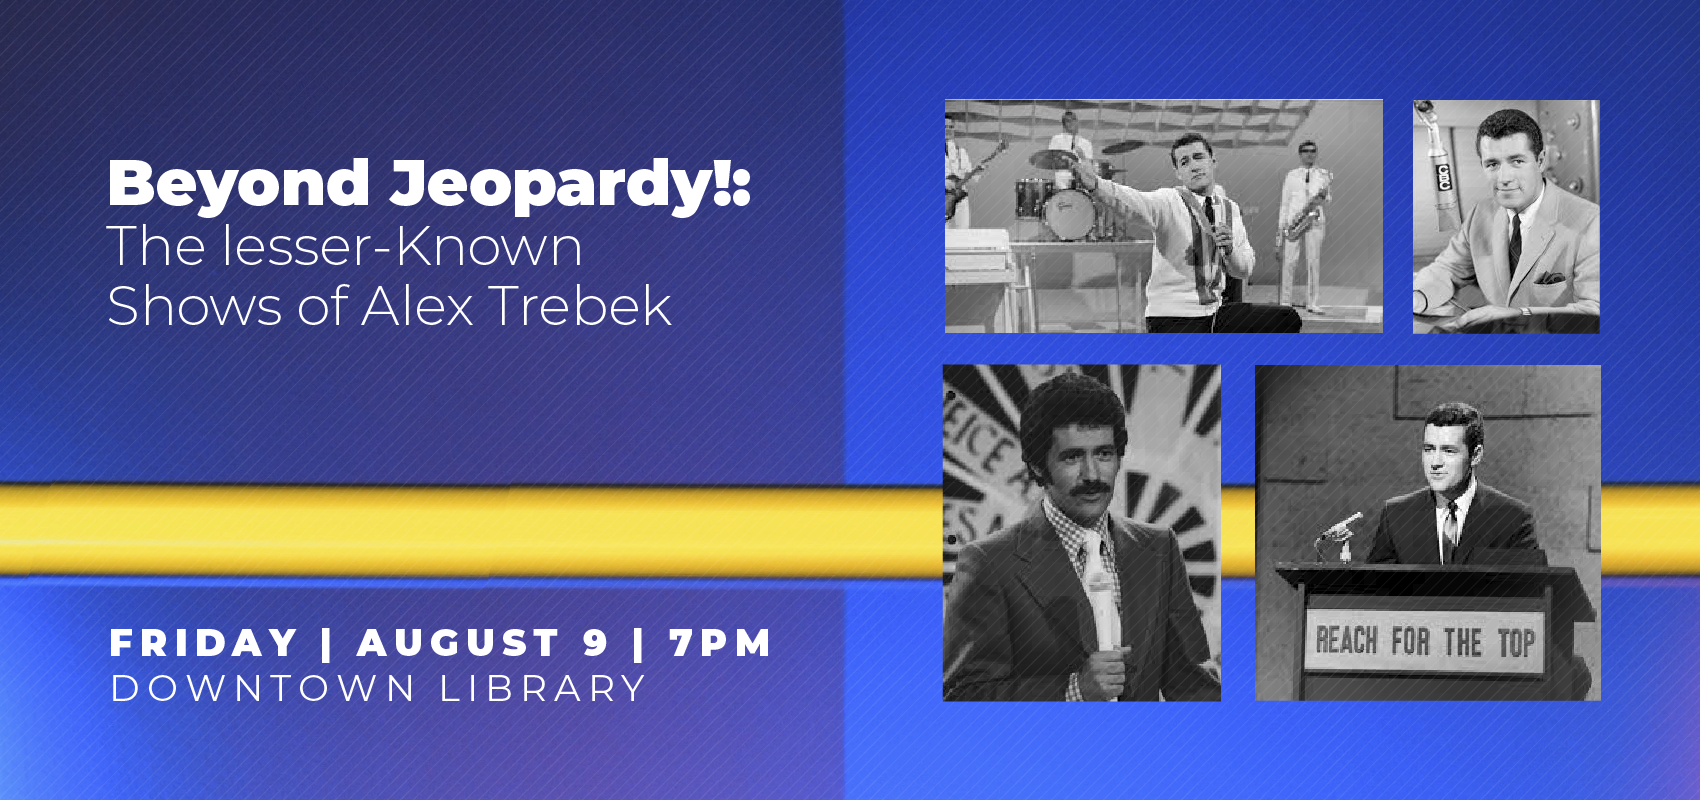 Beyond Jeopardy - Friday August 9. .